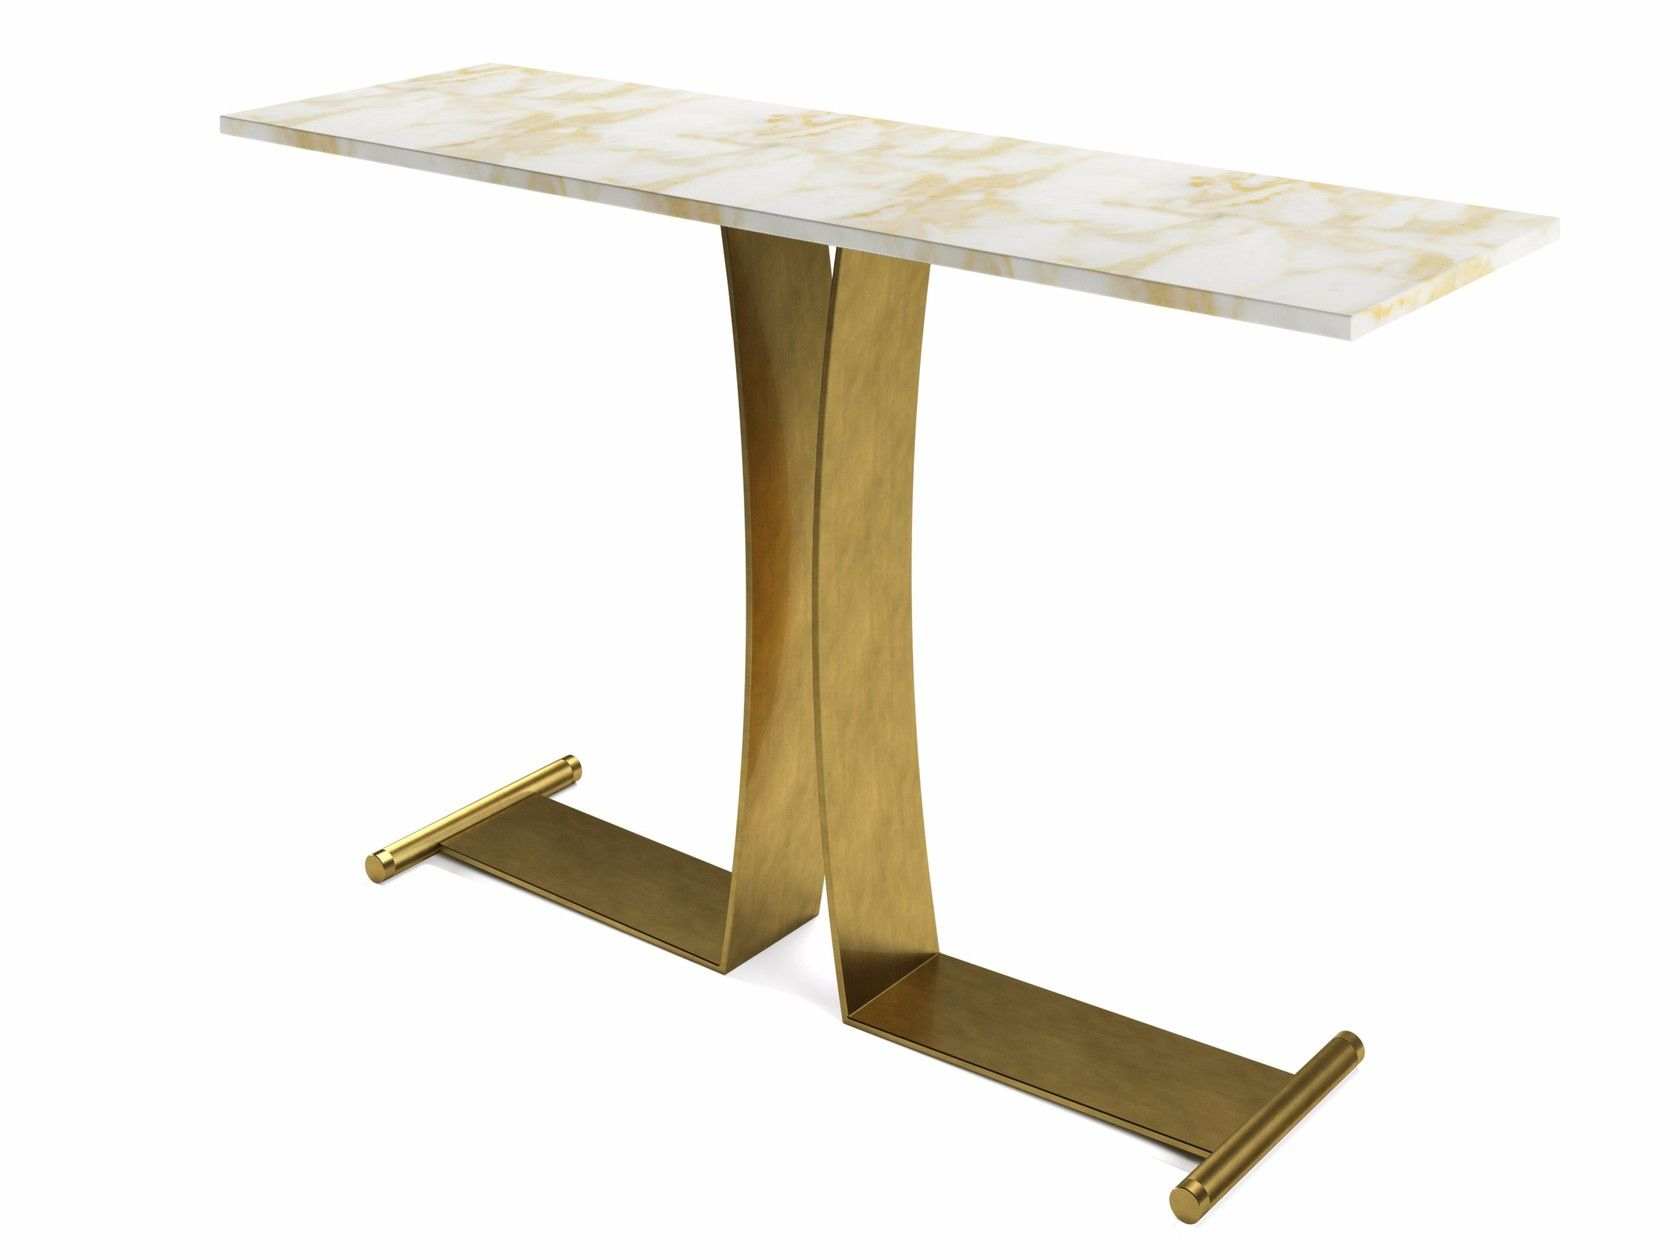 Guy | Console Table In 2018 | 1Gja Console Tables | Pinterest in Parsons White Marble Top & Brass Base 48X16 Console Tables (Image 8 of 30)